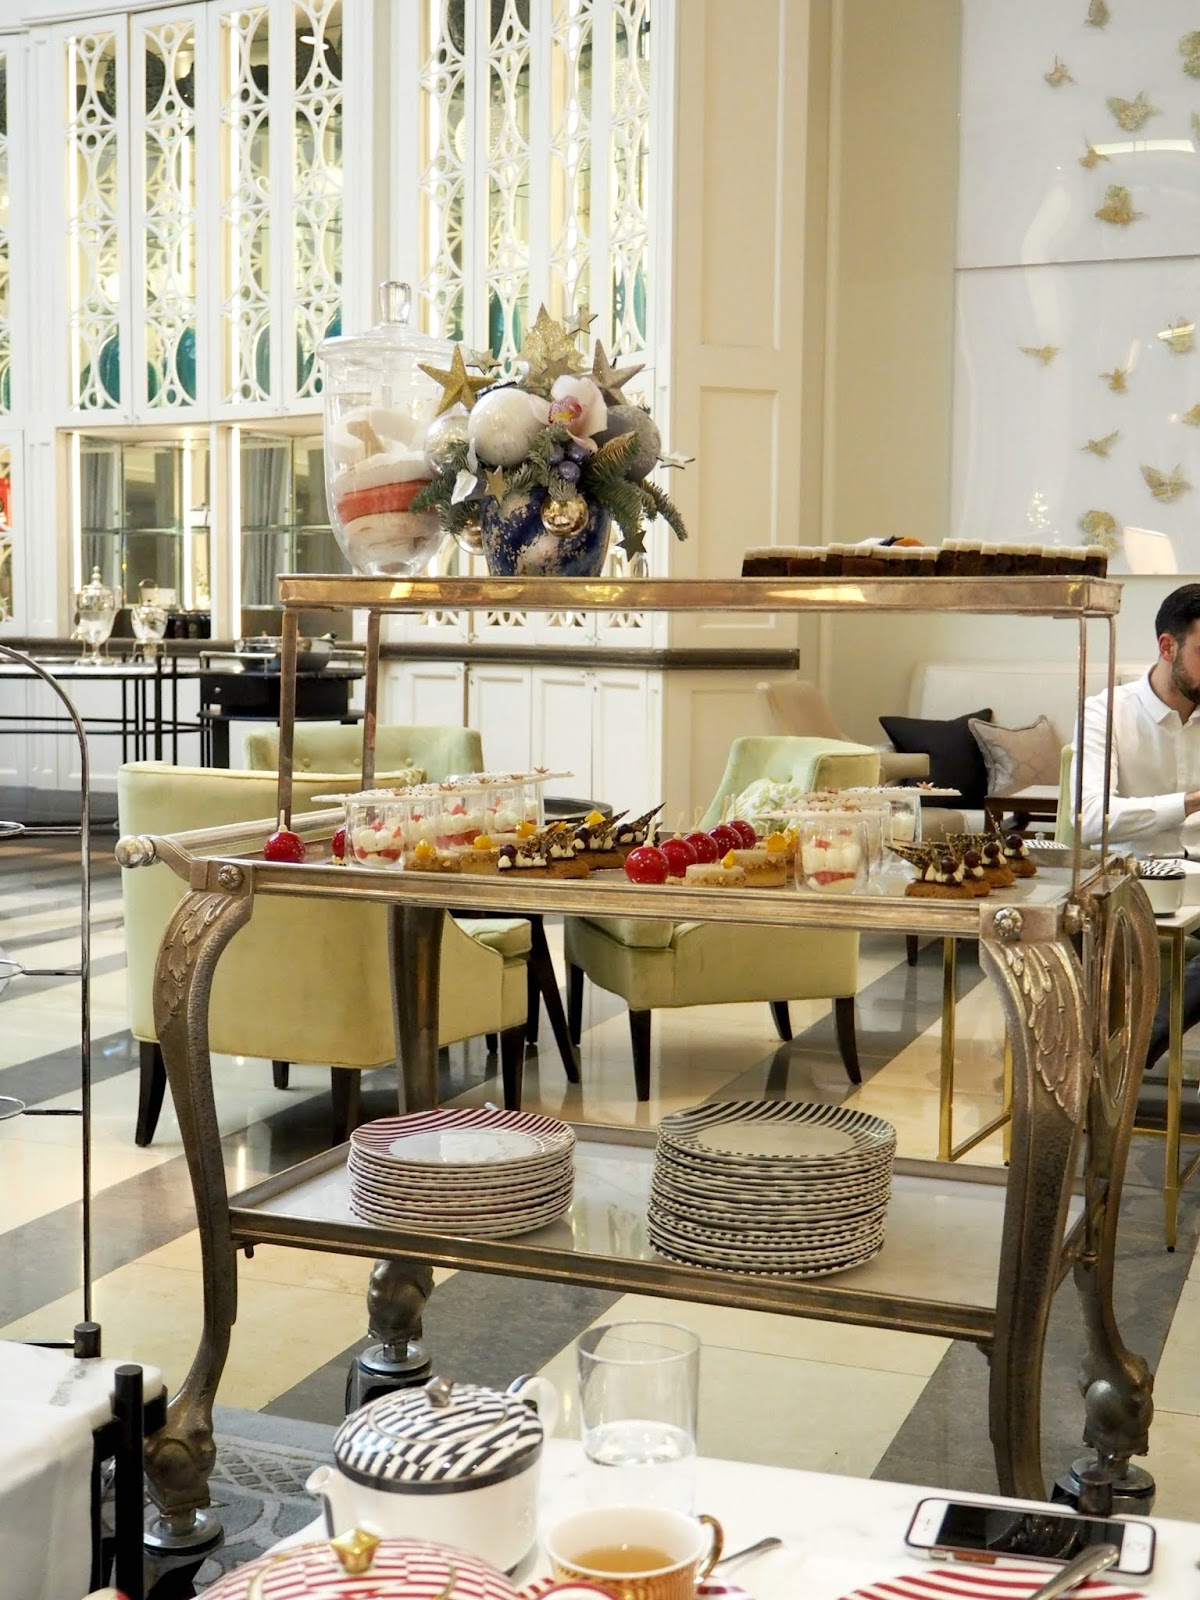 silver trolley serving afternoon tea cakes